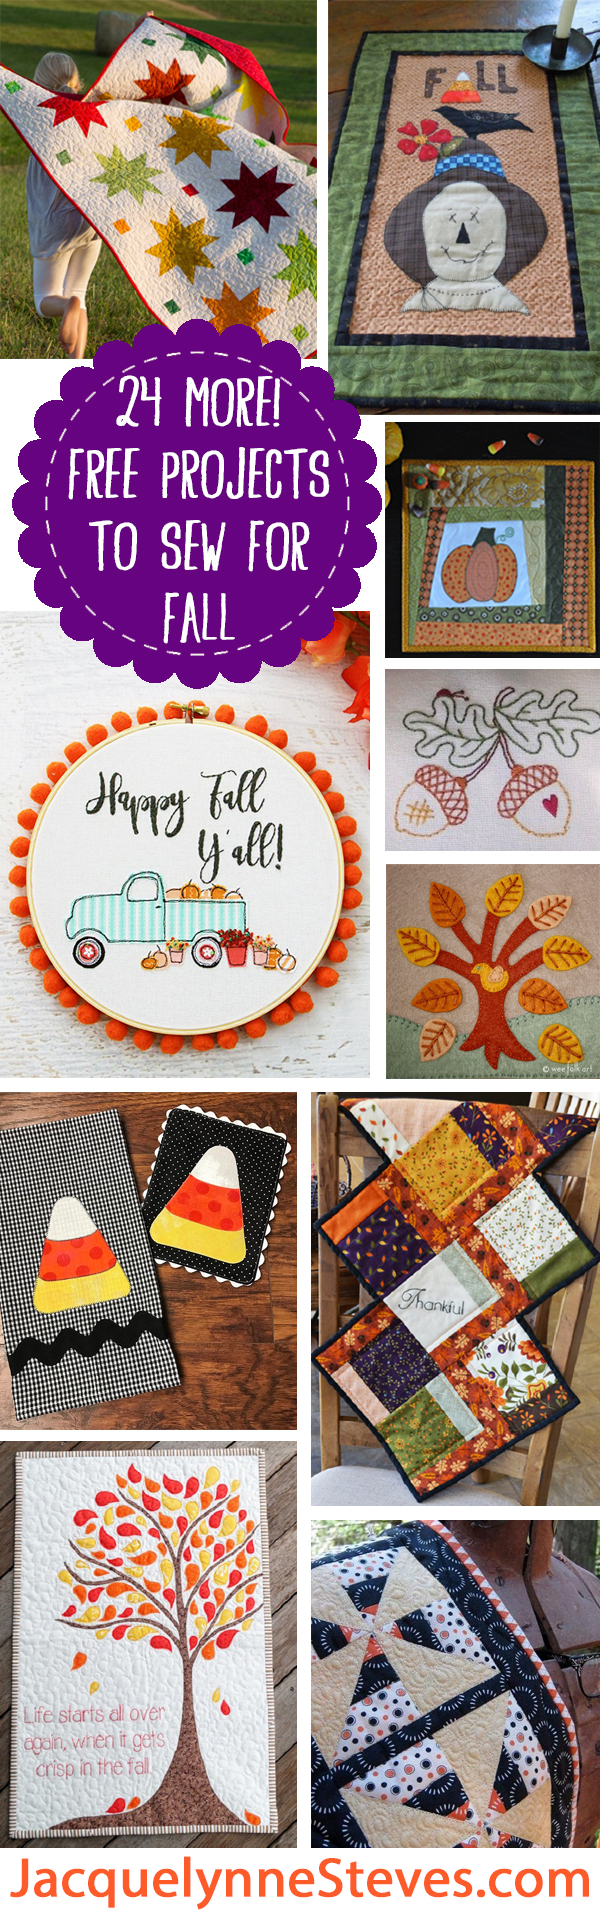 24 MORE Free Projects to sew for Fall! - Jacquelynne Steves